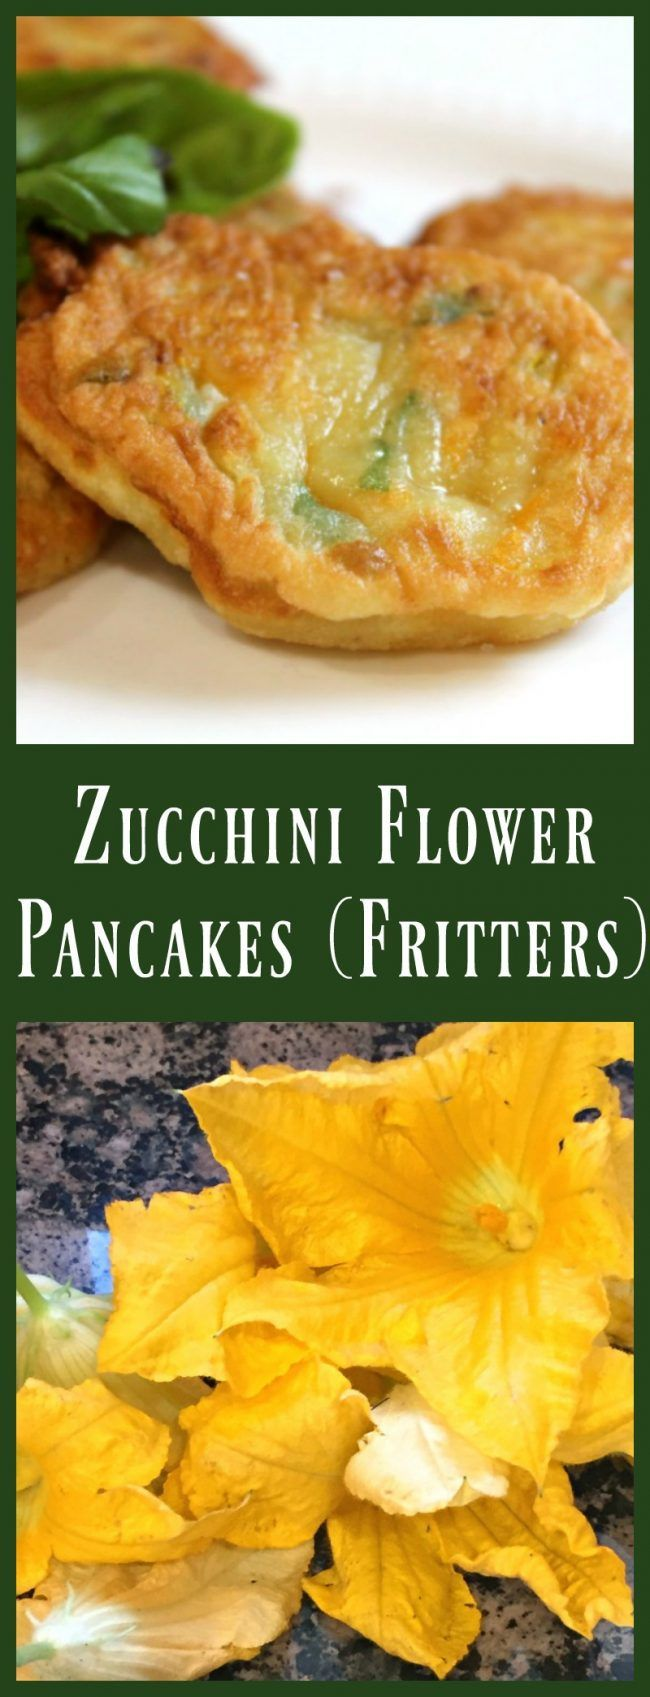 ZUCCHINI FLOWER (BLOSSOM) PANCAKES!  - Did you know that you can eat the flowers from a zucchini plant?  Well you can AND you should!  This recipe is a take on one of my favorite things my Italian grandmother used to cook up for us as soon as the garden was in full swing!  Don't have a garden?  Just grab the blossoms at your farmer's market!